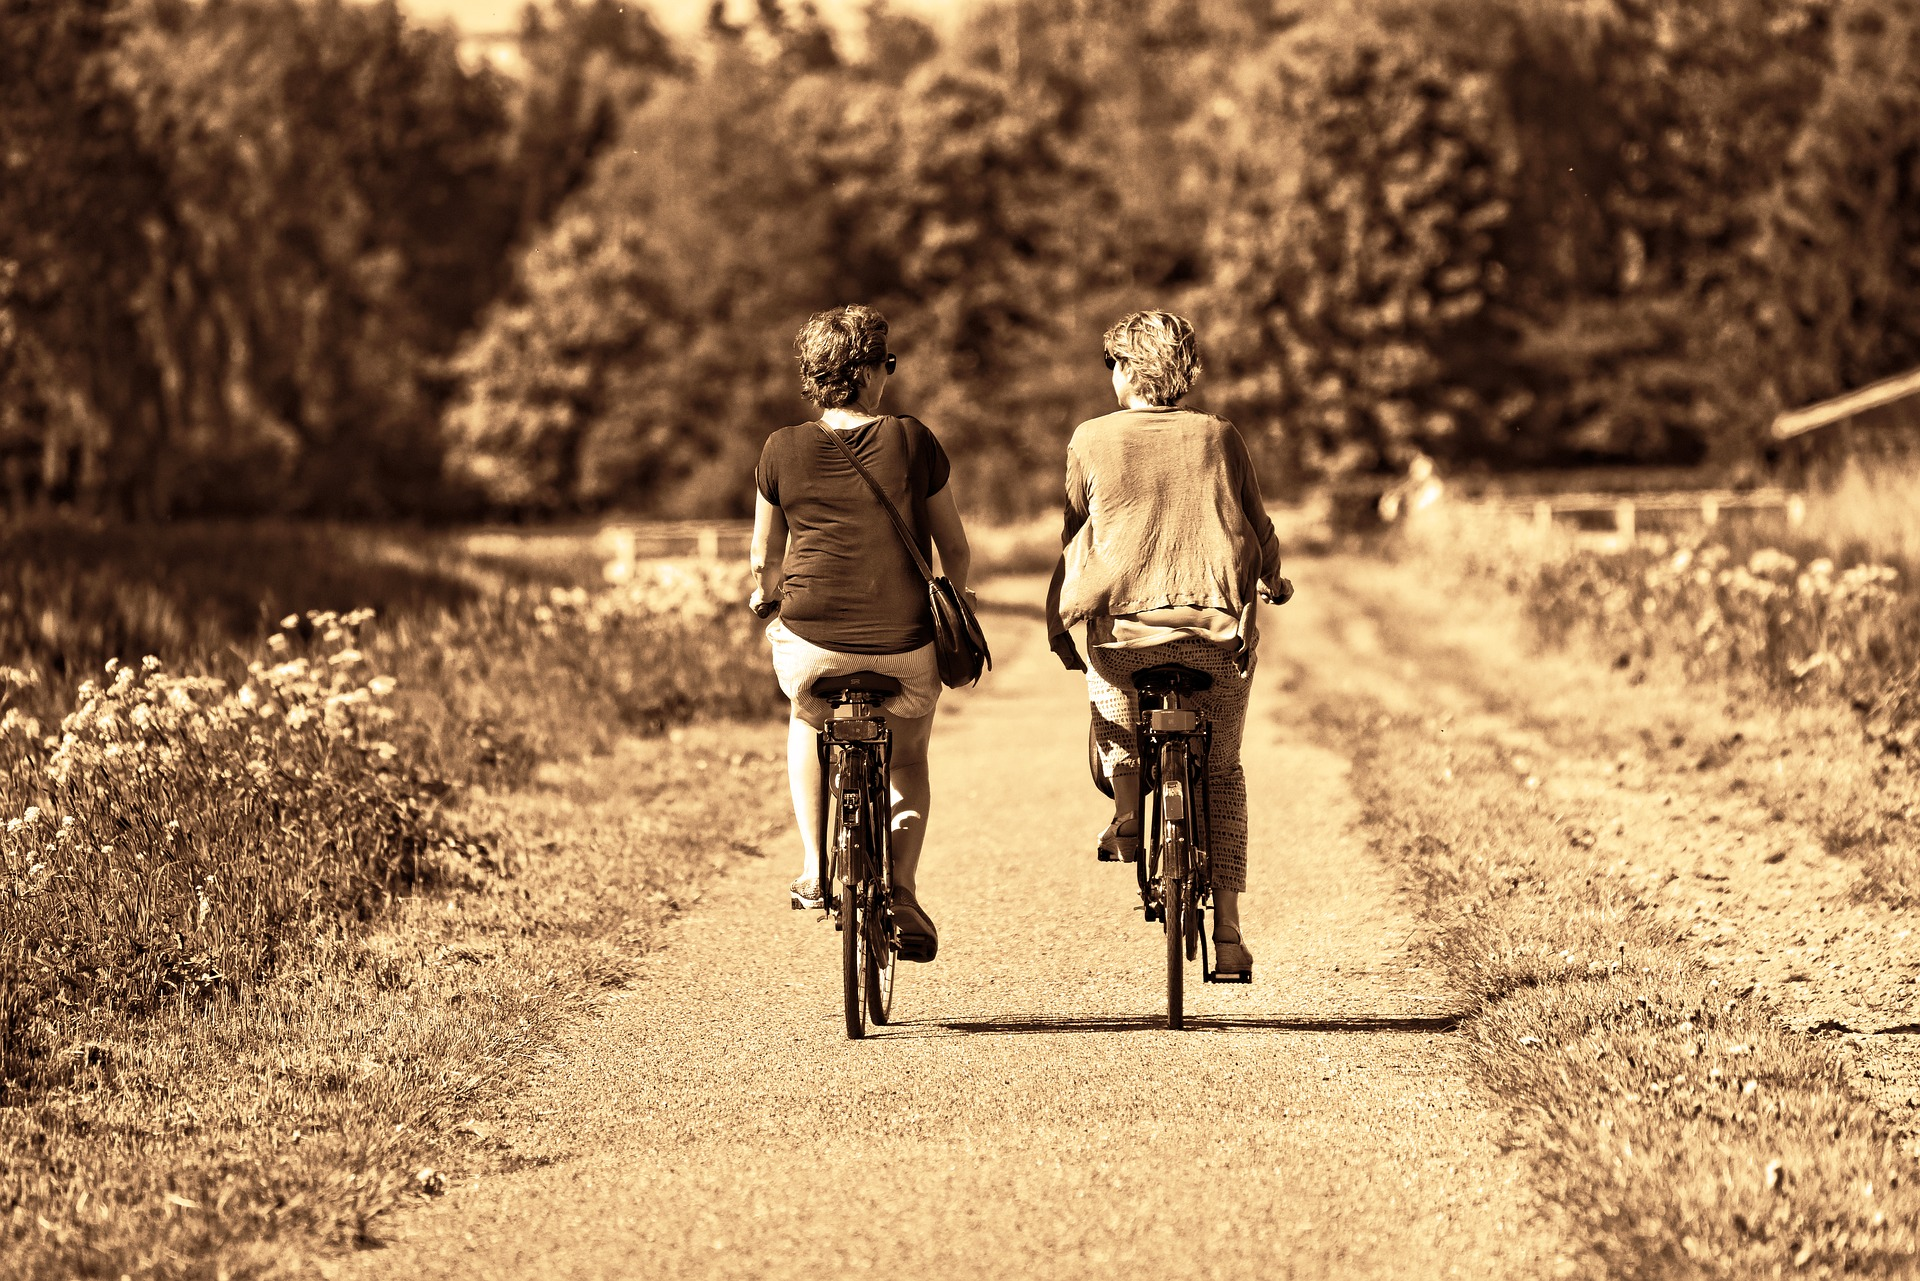 two women on bicycles